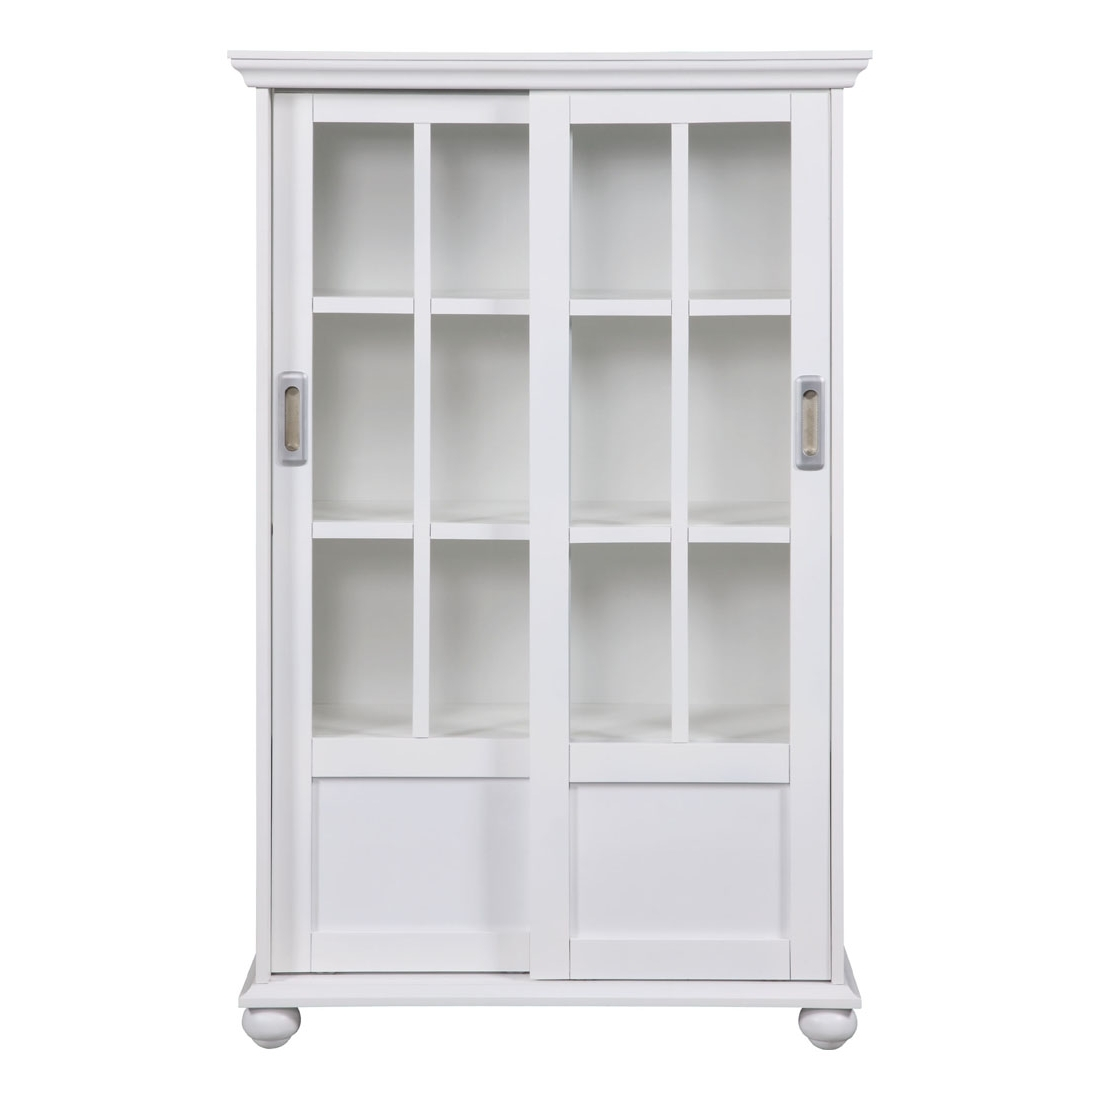 Widely Used Bookcases With Sliding Glass Doors Regarding Altra Bookcase With Sliding Glass Doors (View 8 of 15)